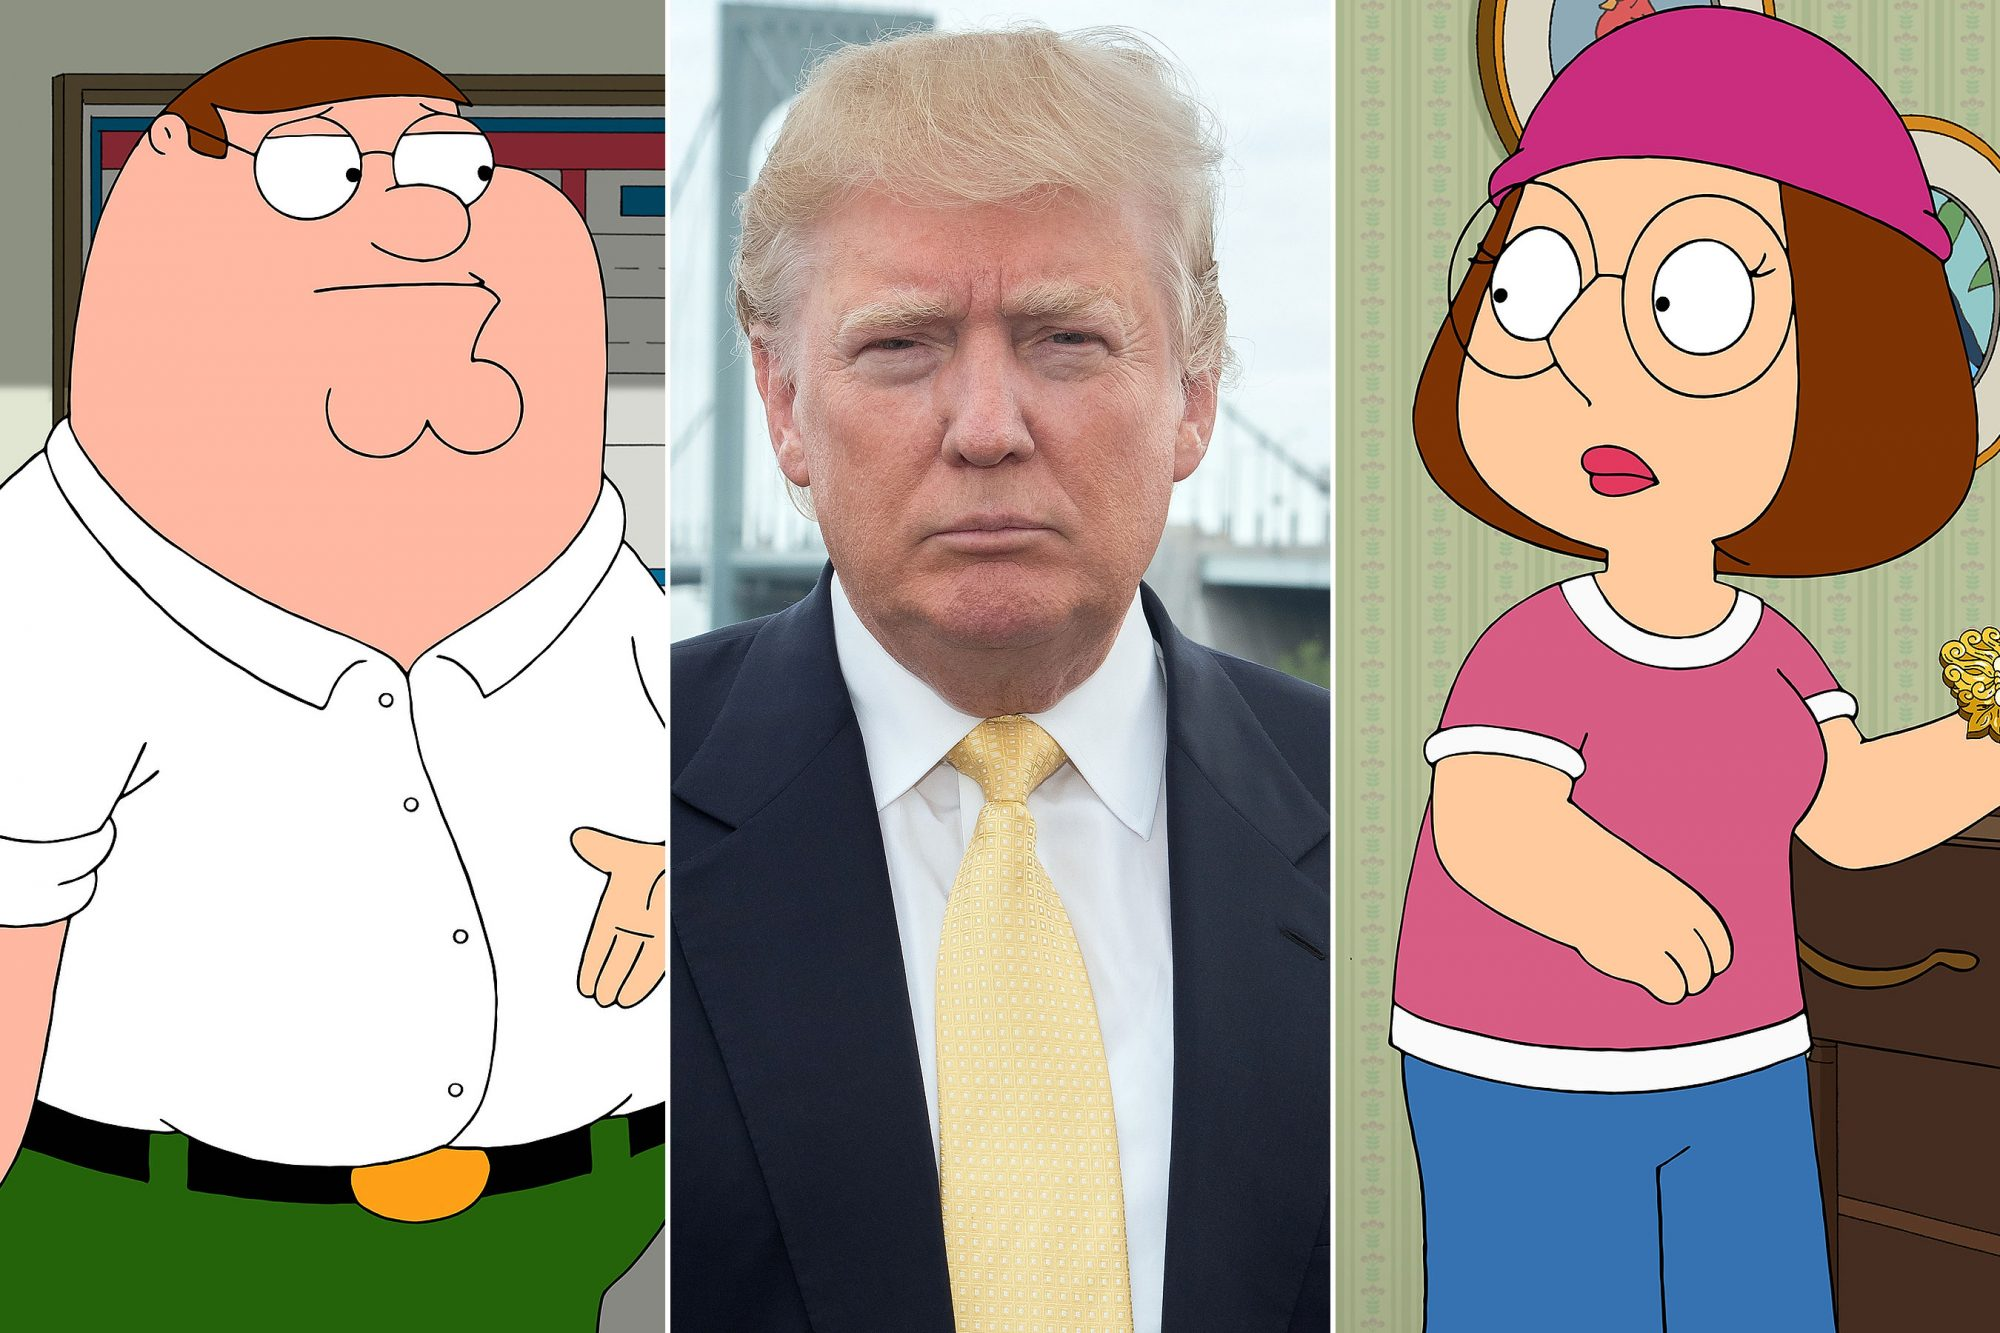 trump-family-guy-1